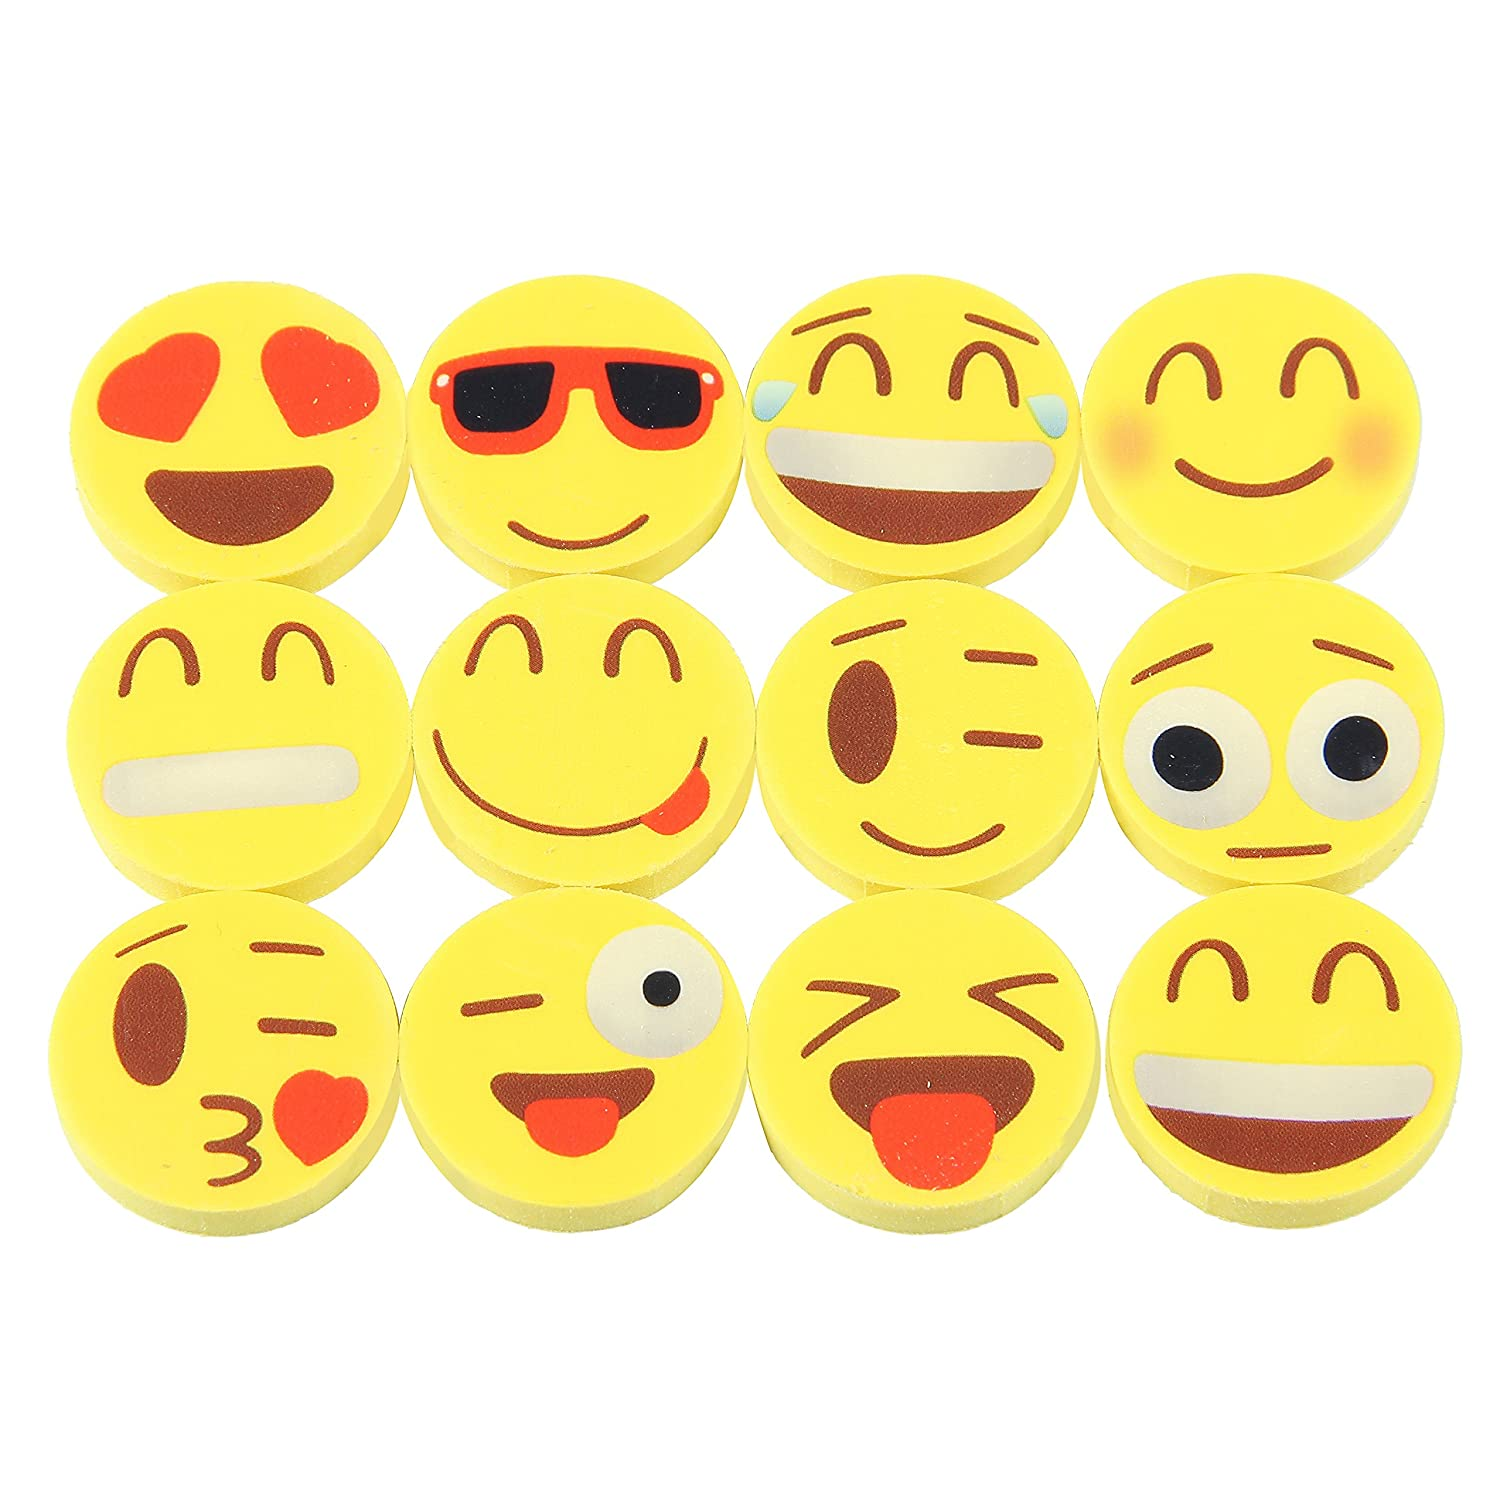 144 Novelty Cute Emoji Erasers Ideal for Homework Rewards and Kids Party Favors Colorful Expressions Kids Will Love Materials Wont Smudge or Tear Paper Fun School Supplies